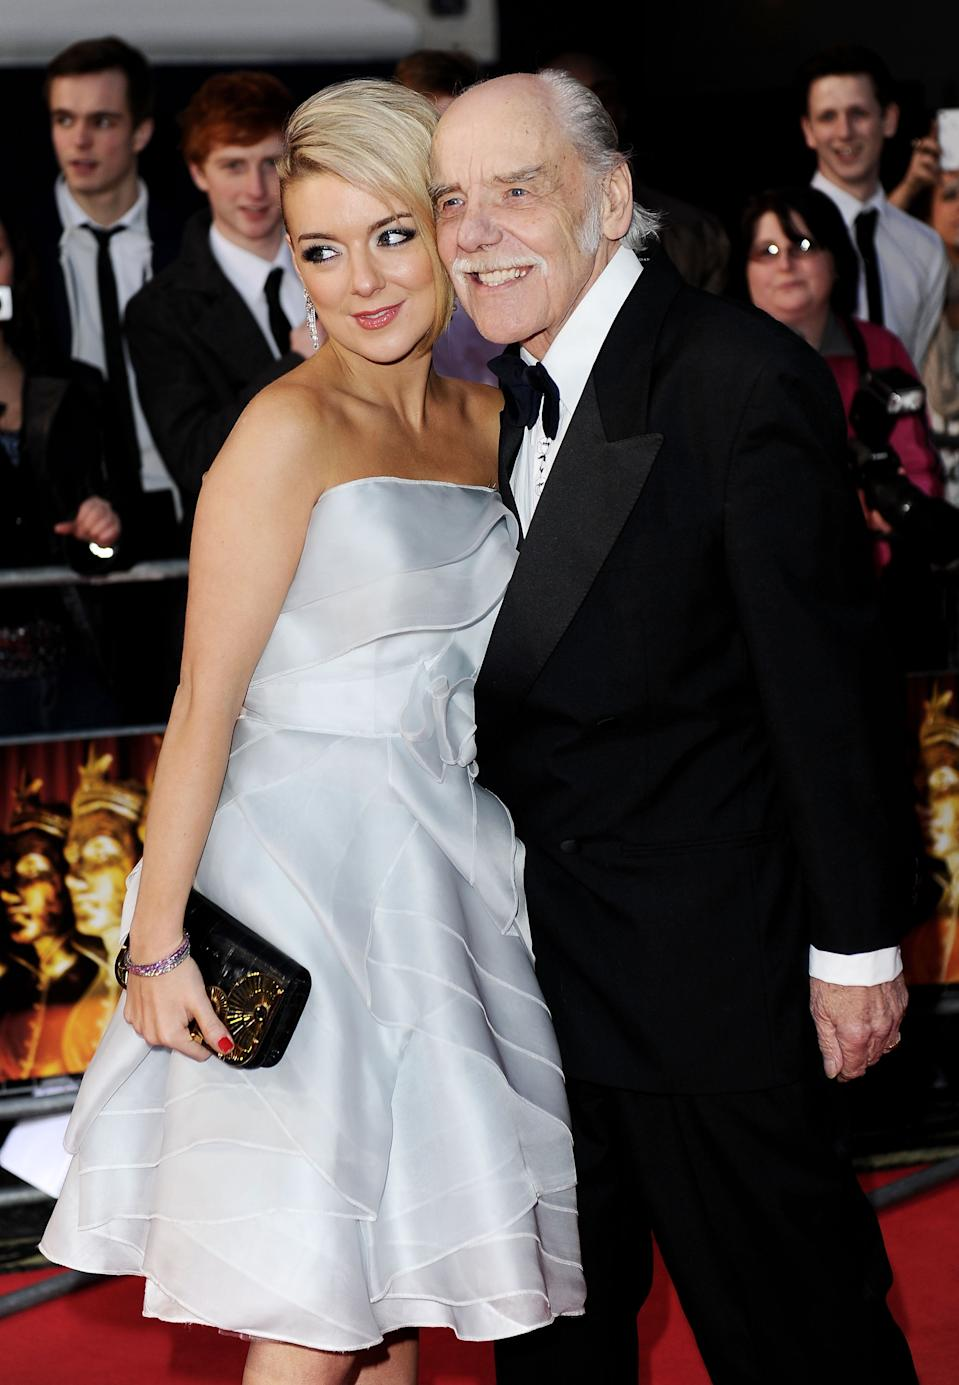 Sheridan Smith (L) and her father Colin Smith attend The Olivier Awards 2011 at Theatre Royal on March 13, 2011 in London, England. (Photo by Ian Gavan/Getty Images)